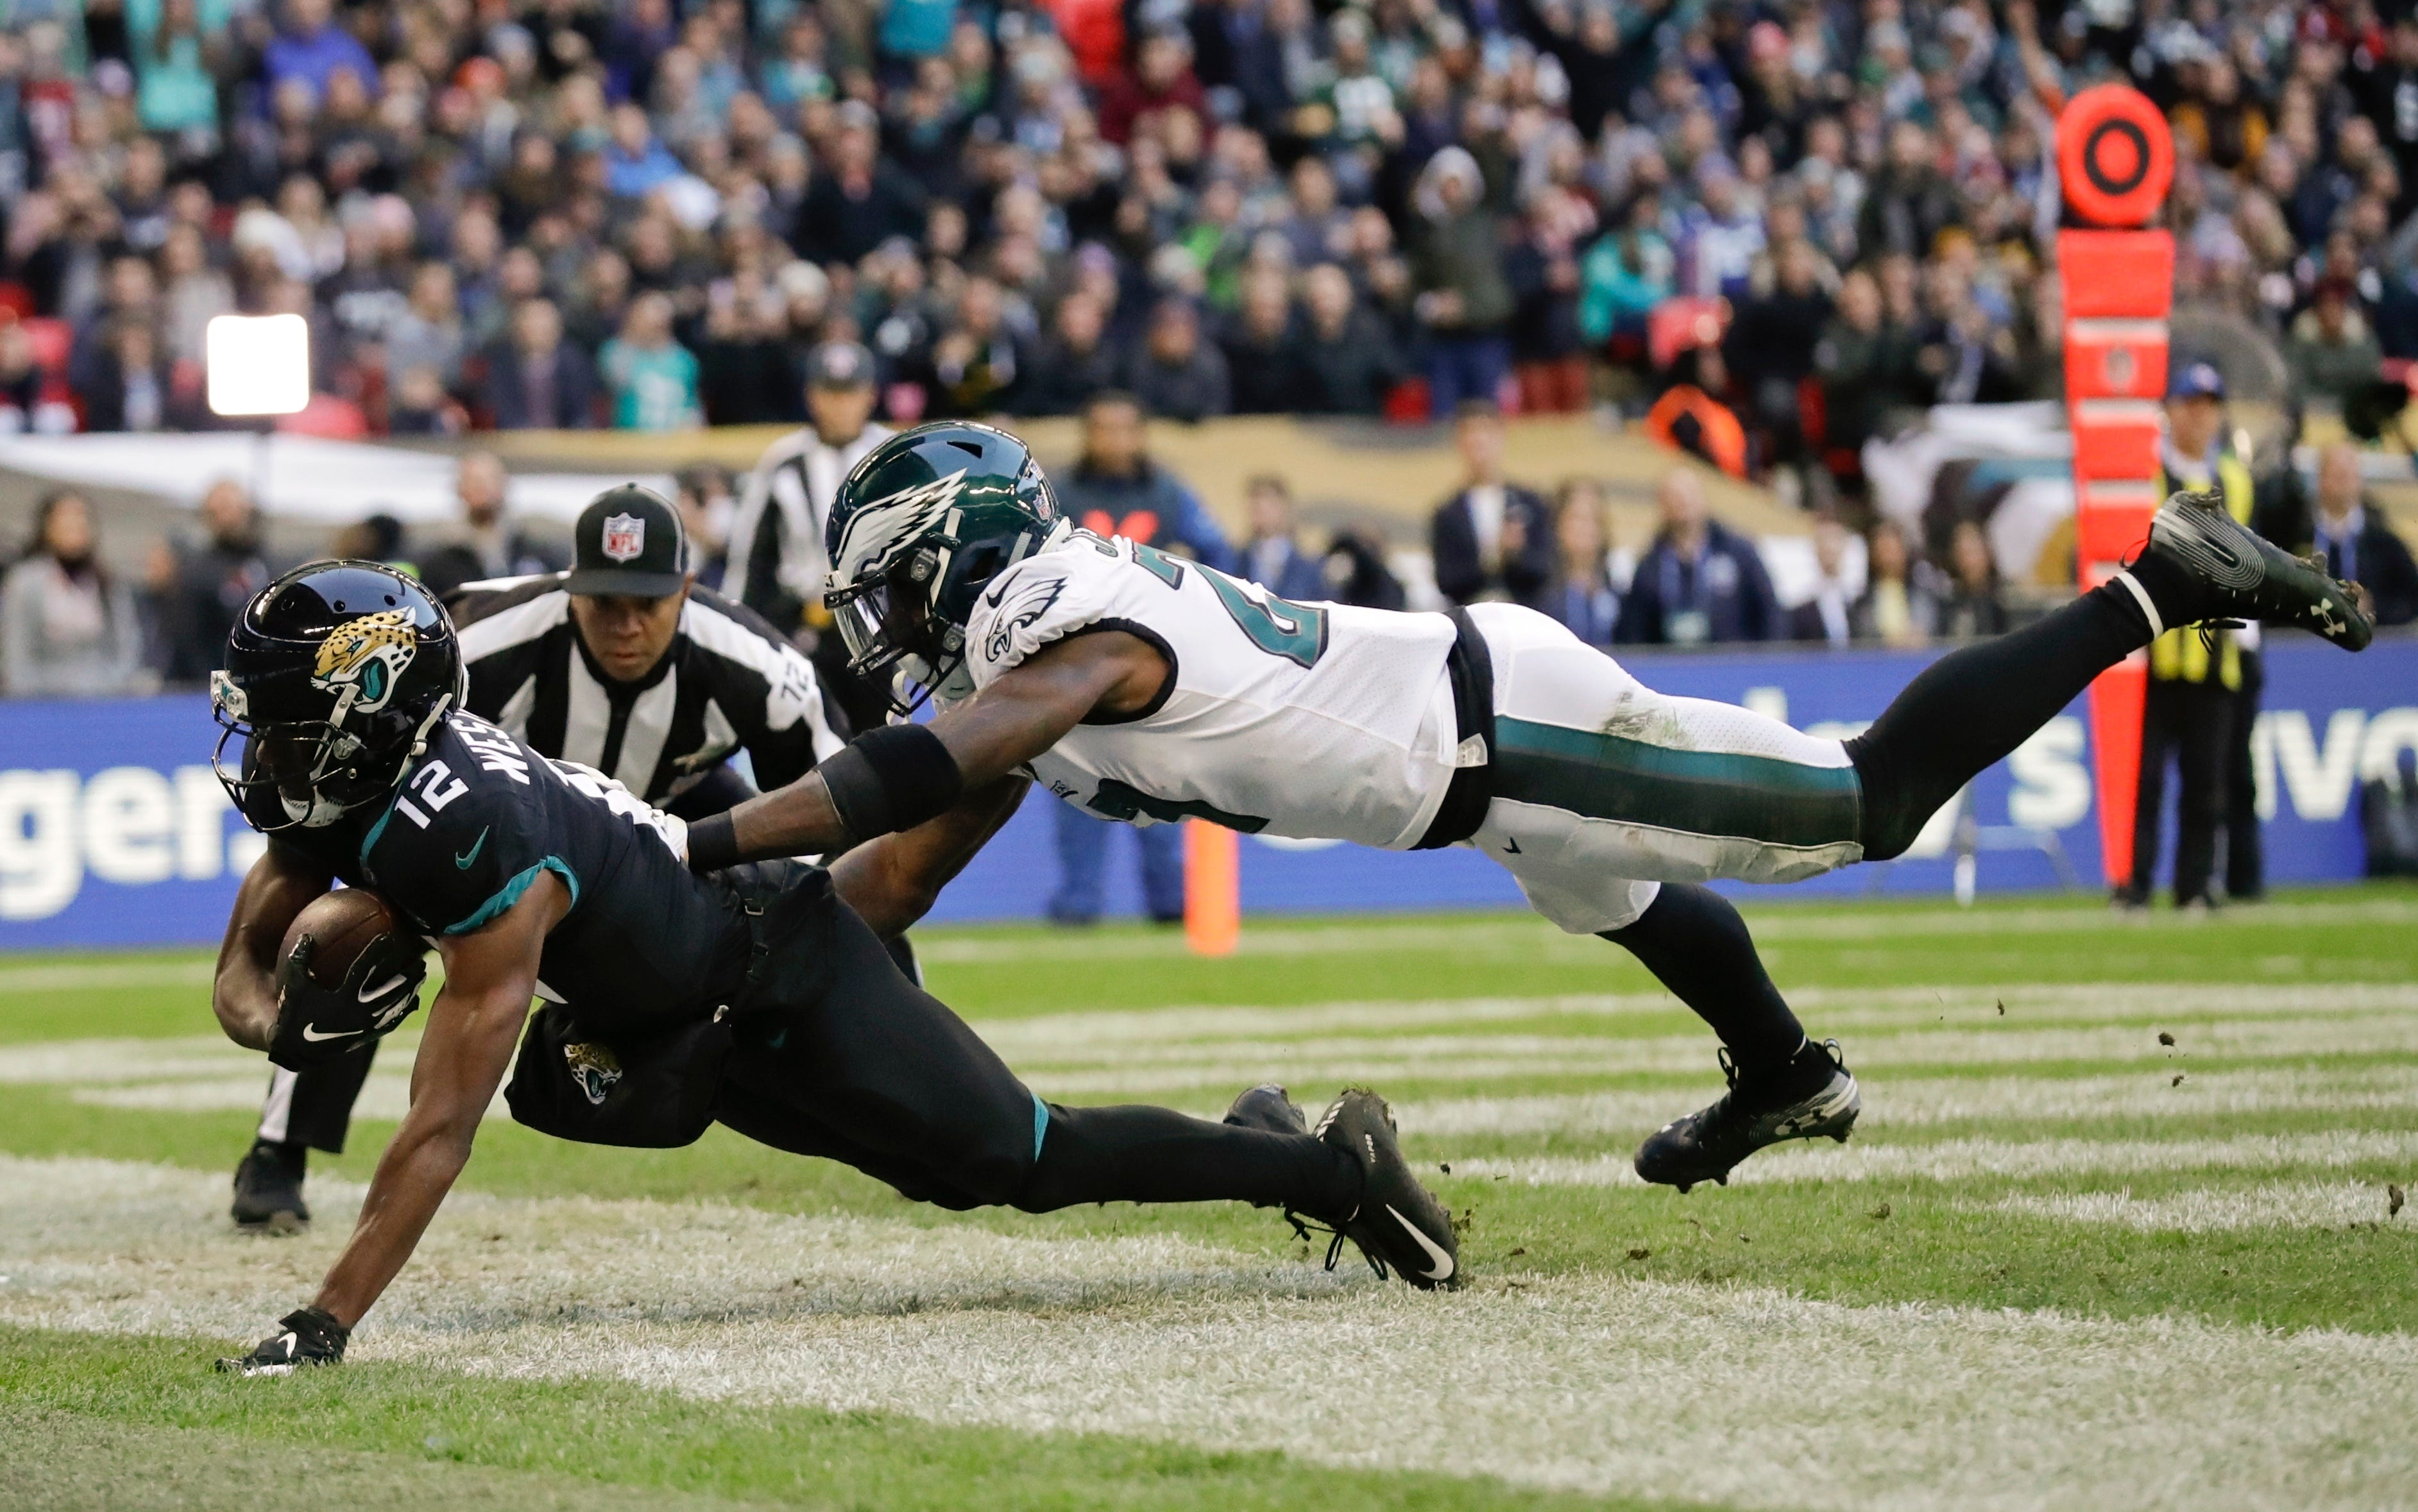 Wentz's 3 TD passes give Eagles win vs. Jags in London